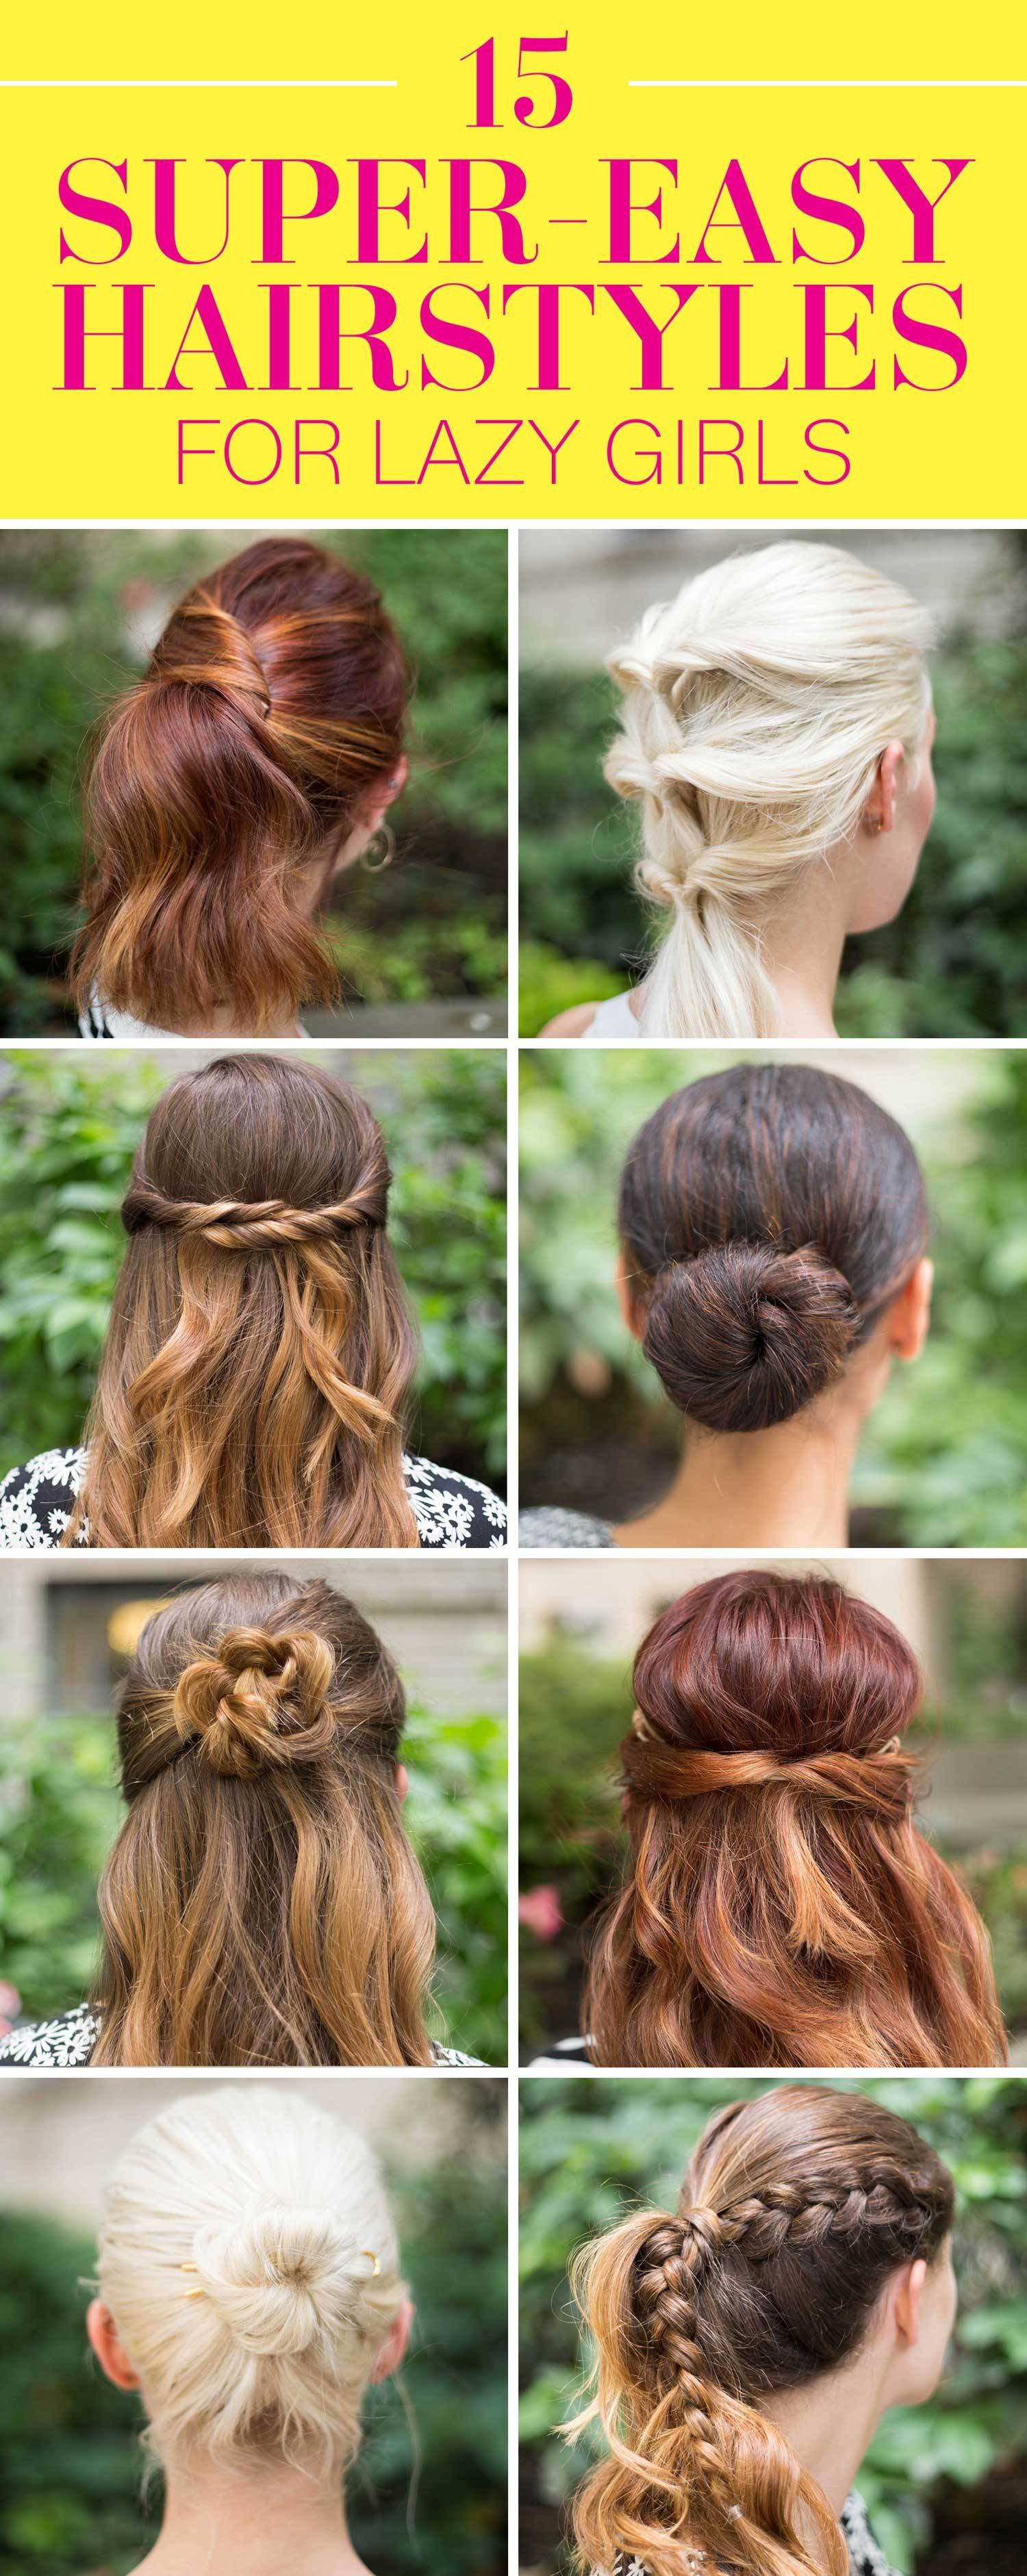 New 15 Super Easy Hairstyles For Girls In 2016 Three Step Ideas With Pictures